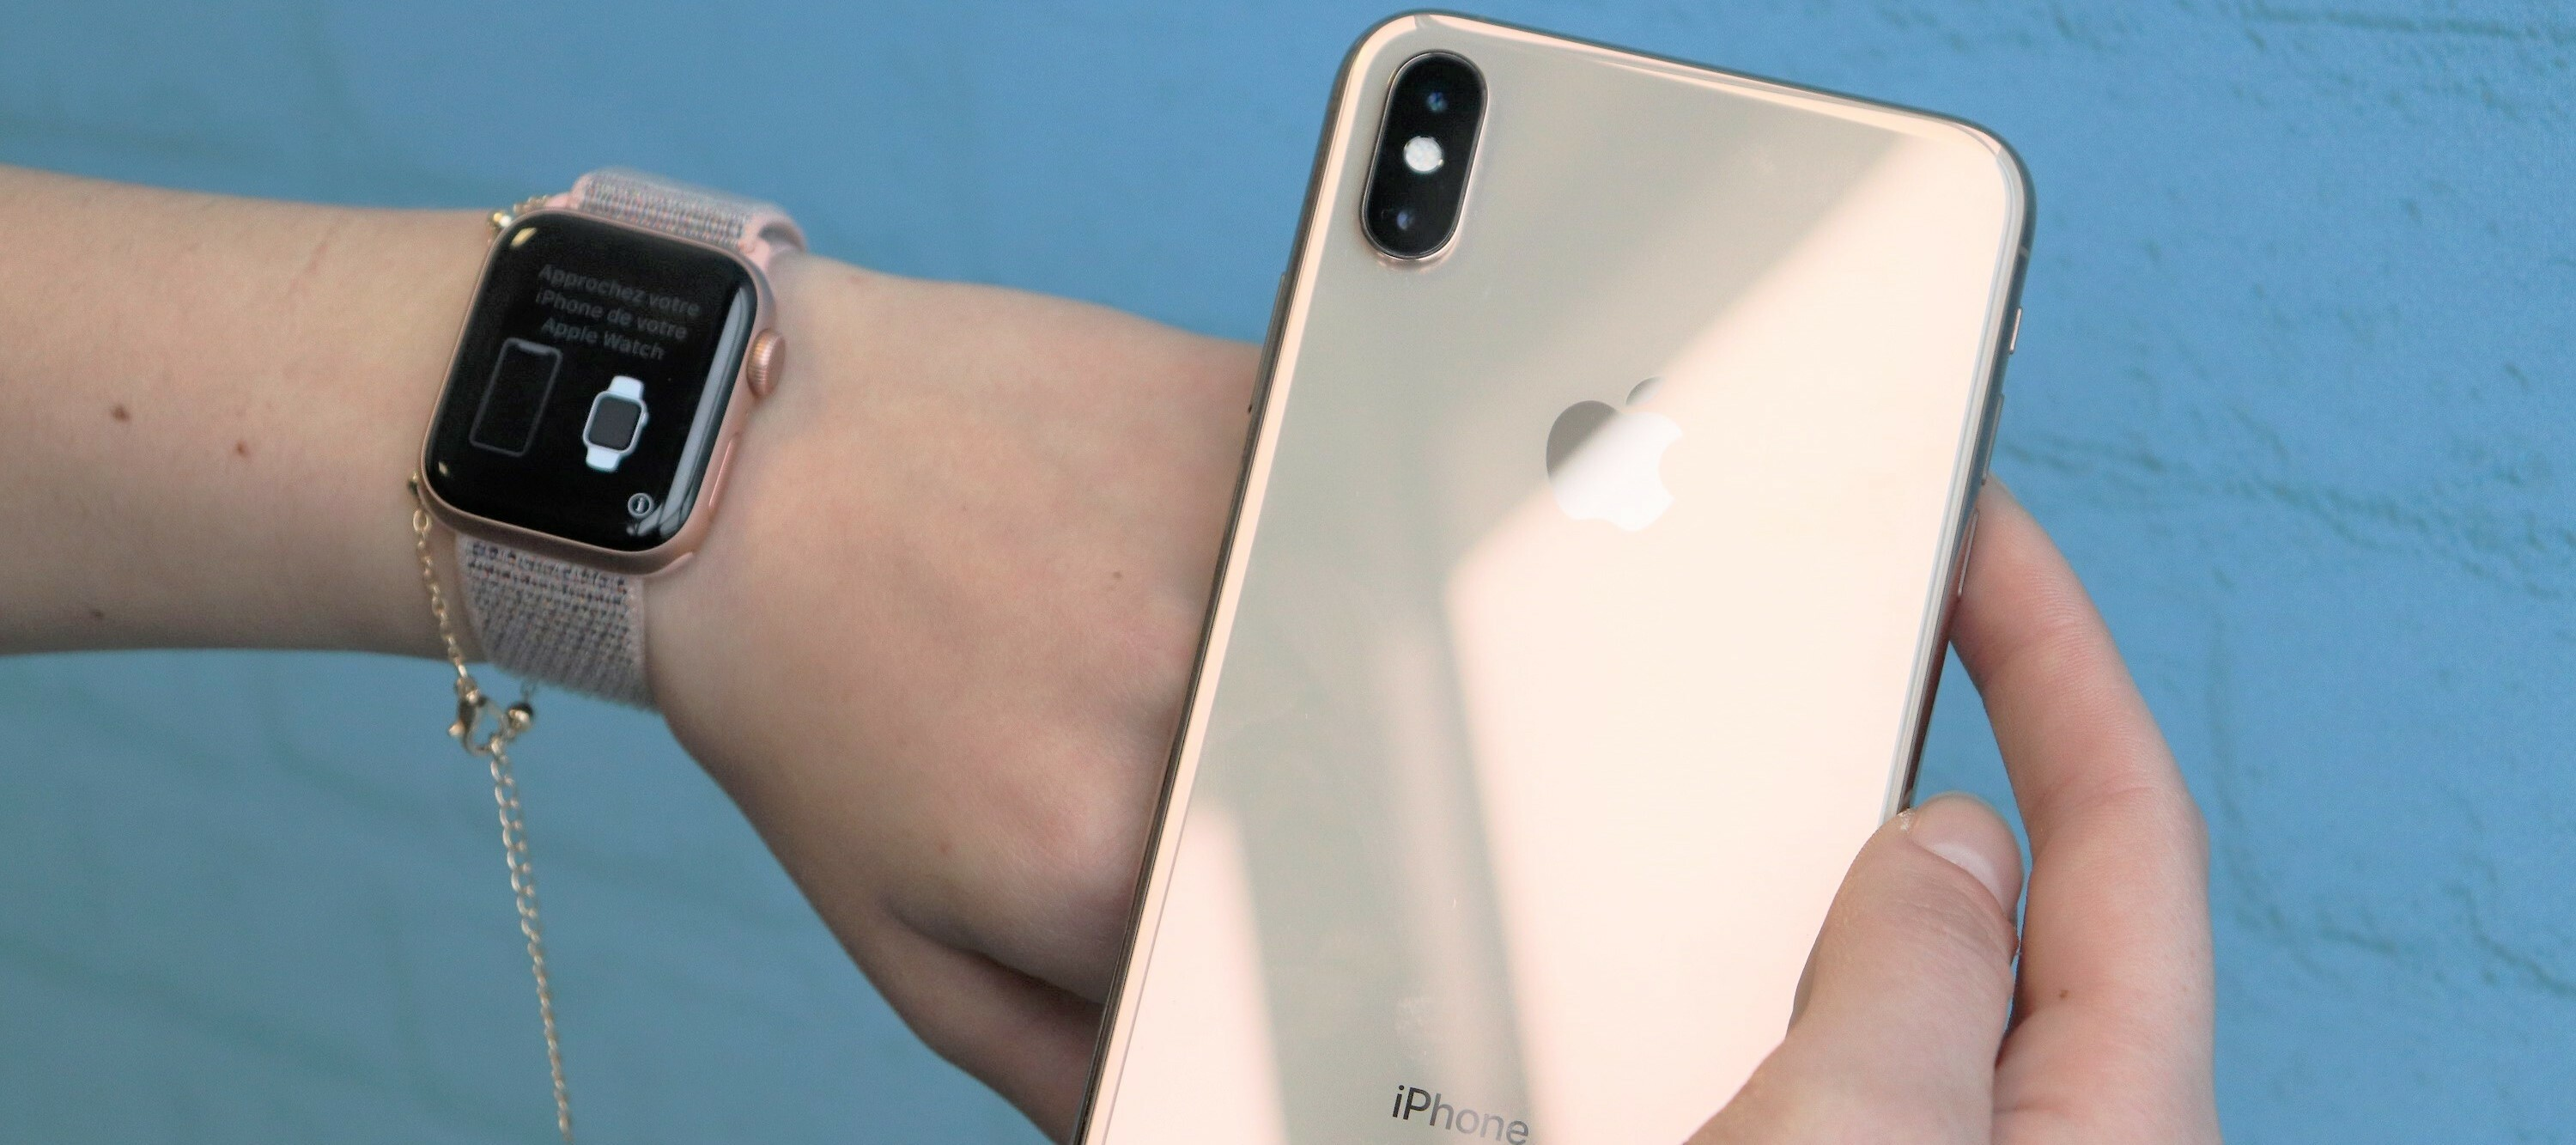 iPhone Xs Max & Apple Watch S4 Testgeräte-Bundle in roségold: Dein Test ist gefragt!